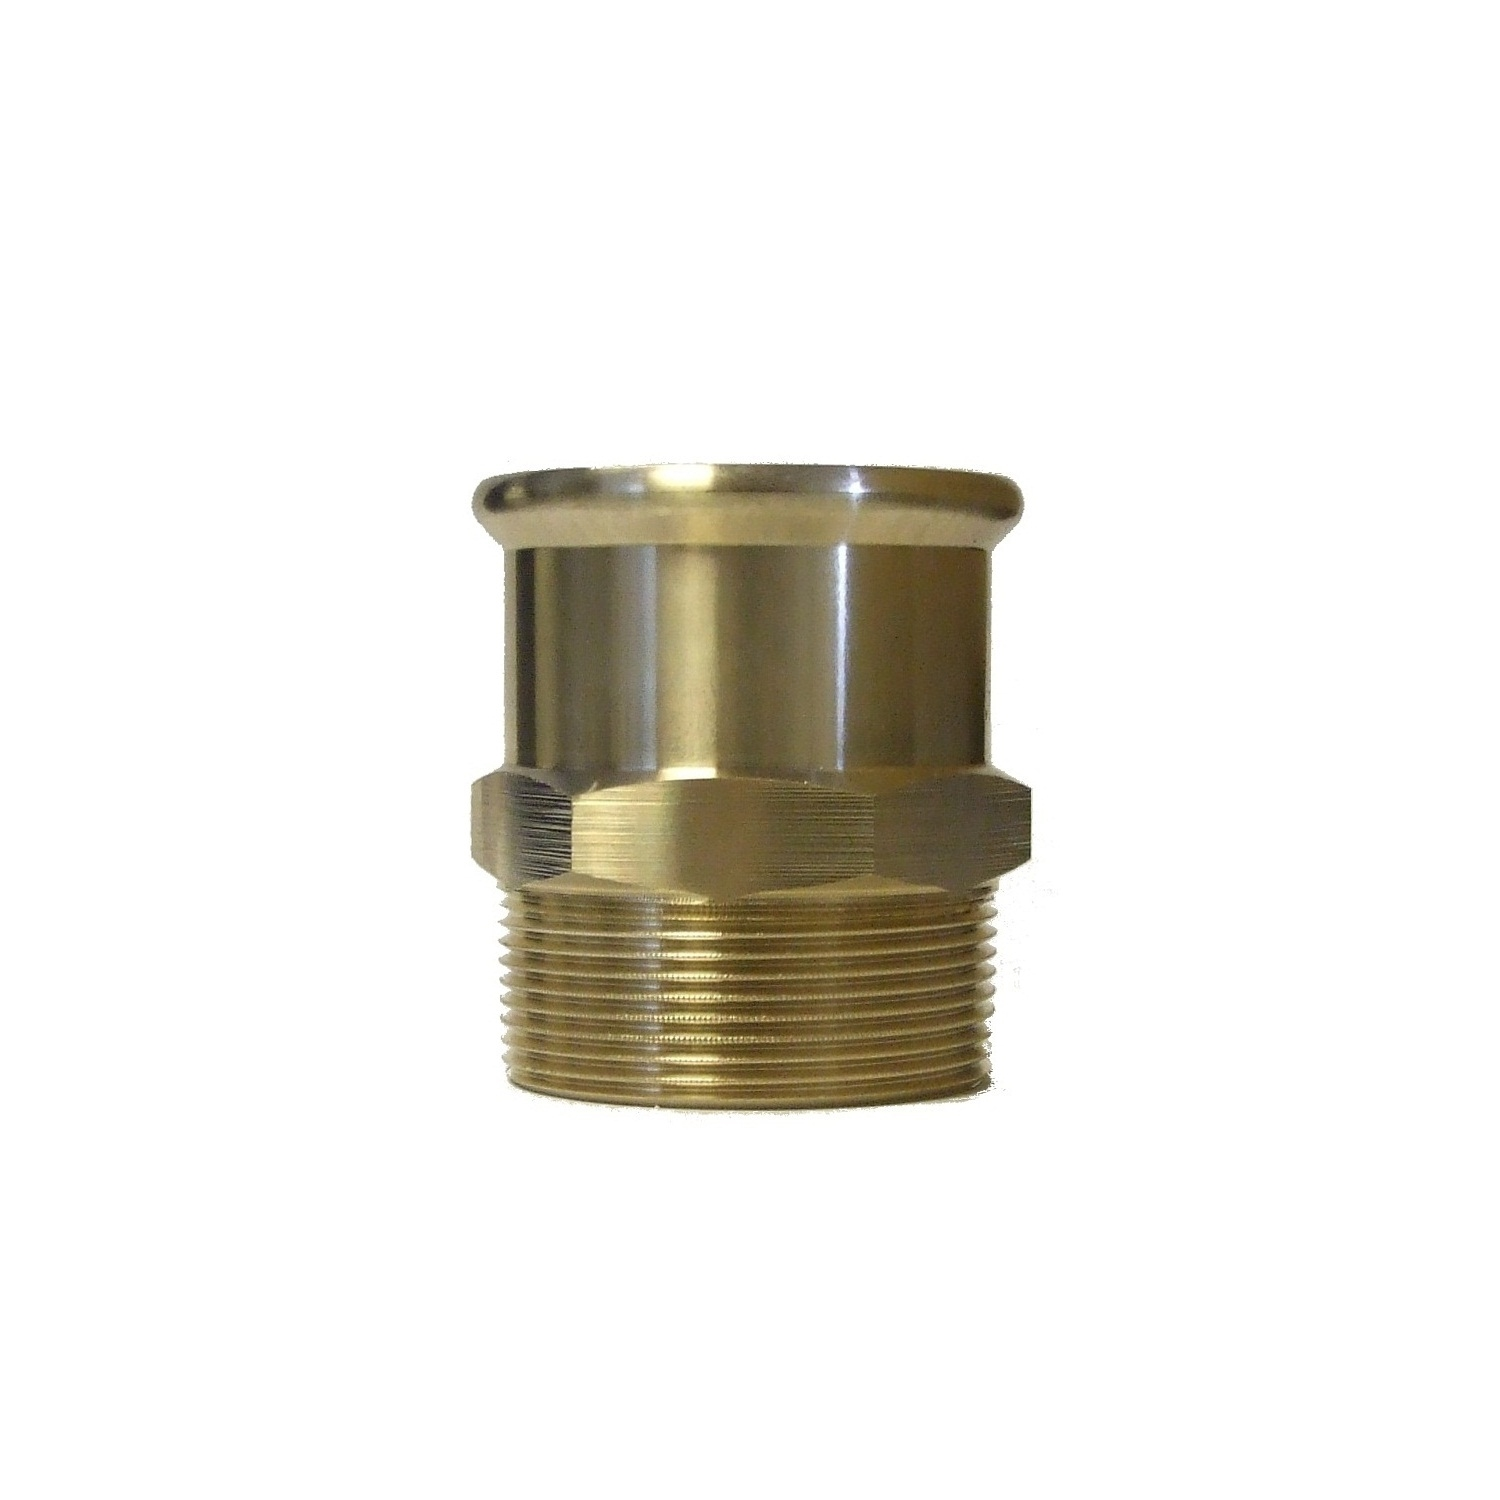 Pressfit Copper Male Adaptor, 8243g